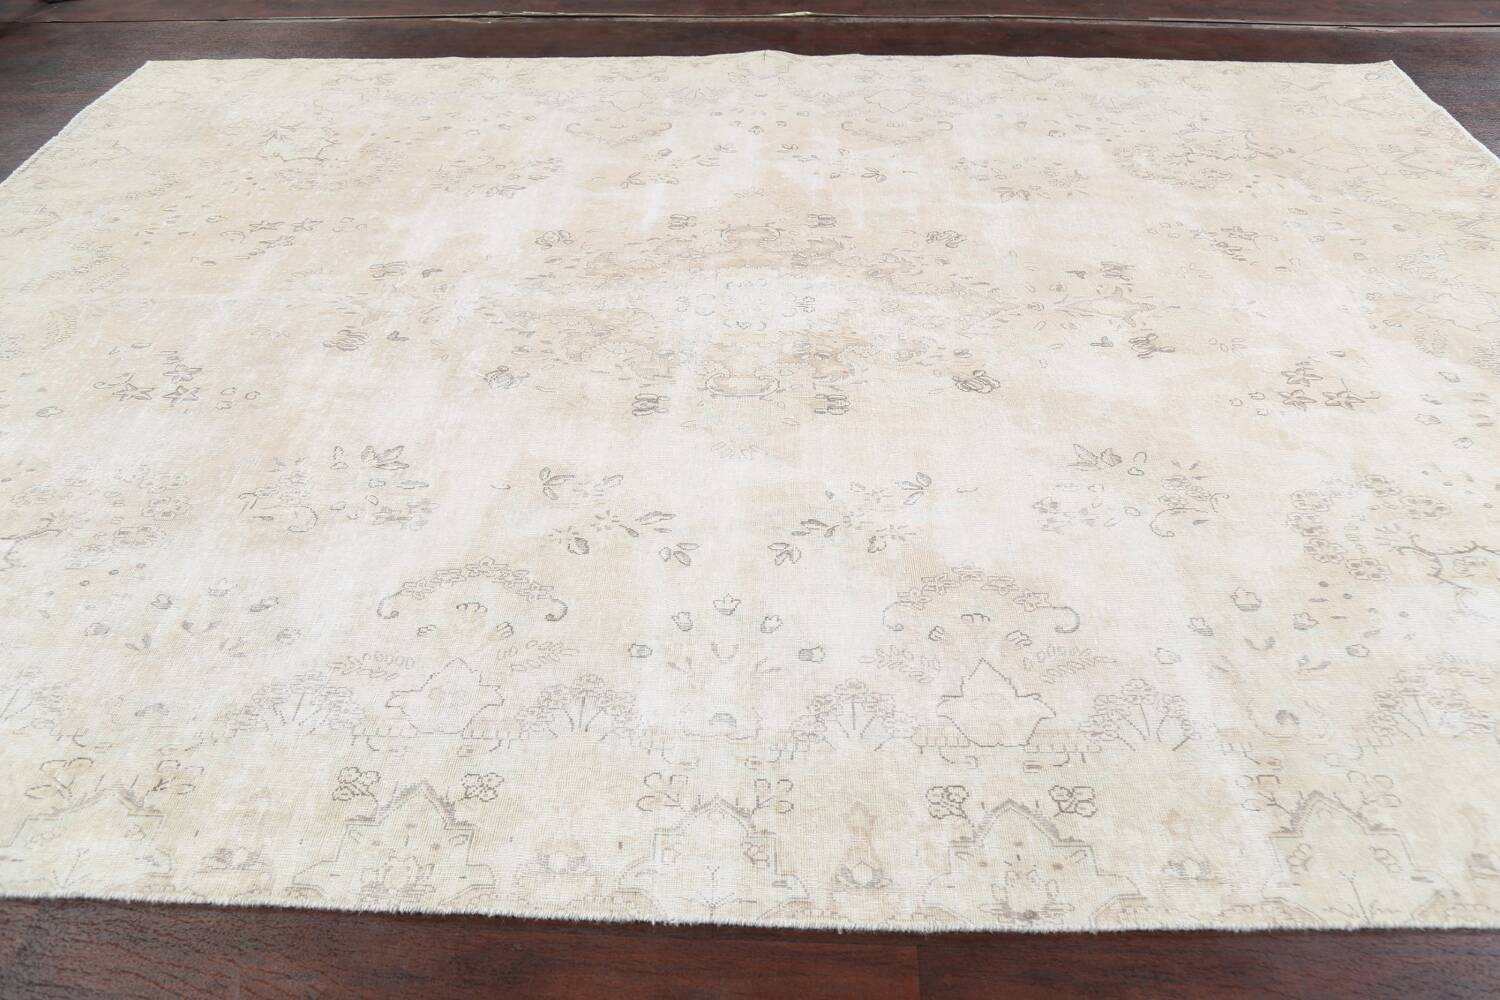 Muted Distressed Kerman Persian Area Rug 8x12 image 15